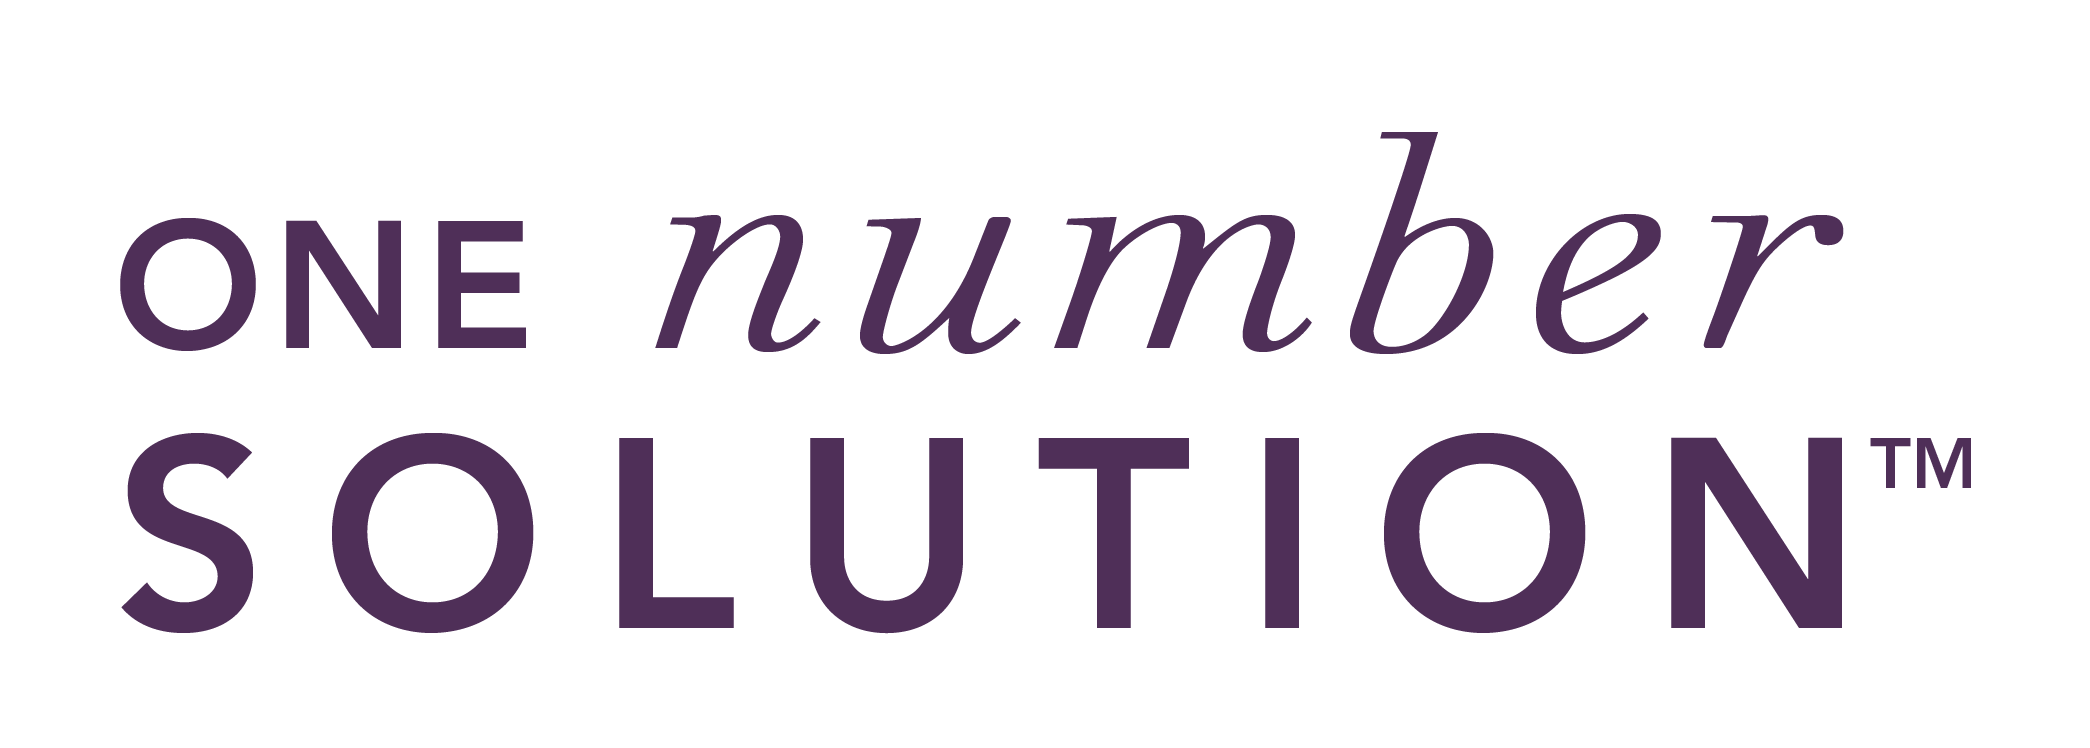 One Number Solution Logo for BUSINESS-03.png